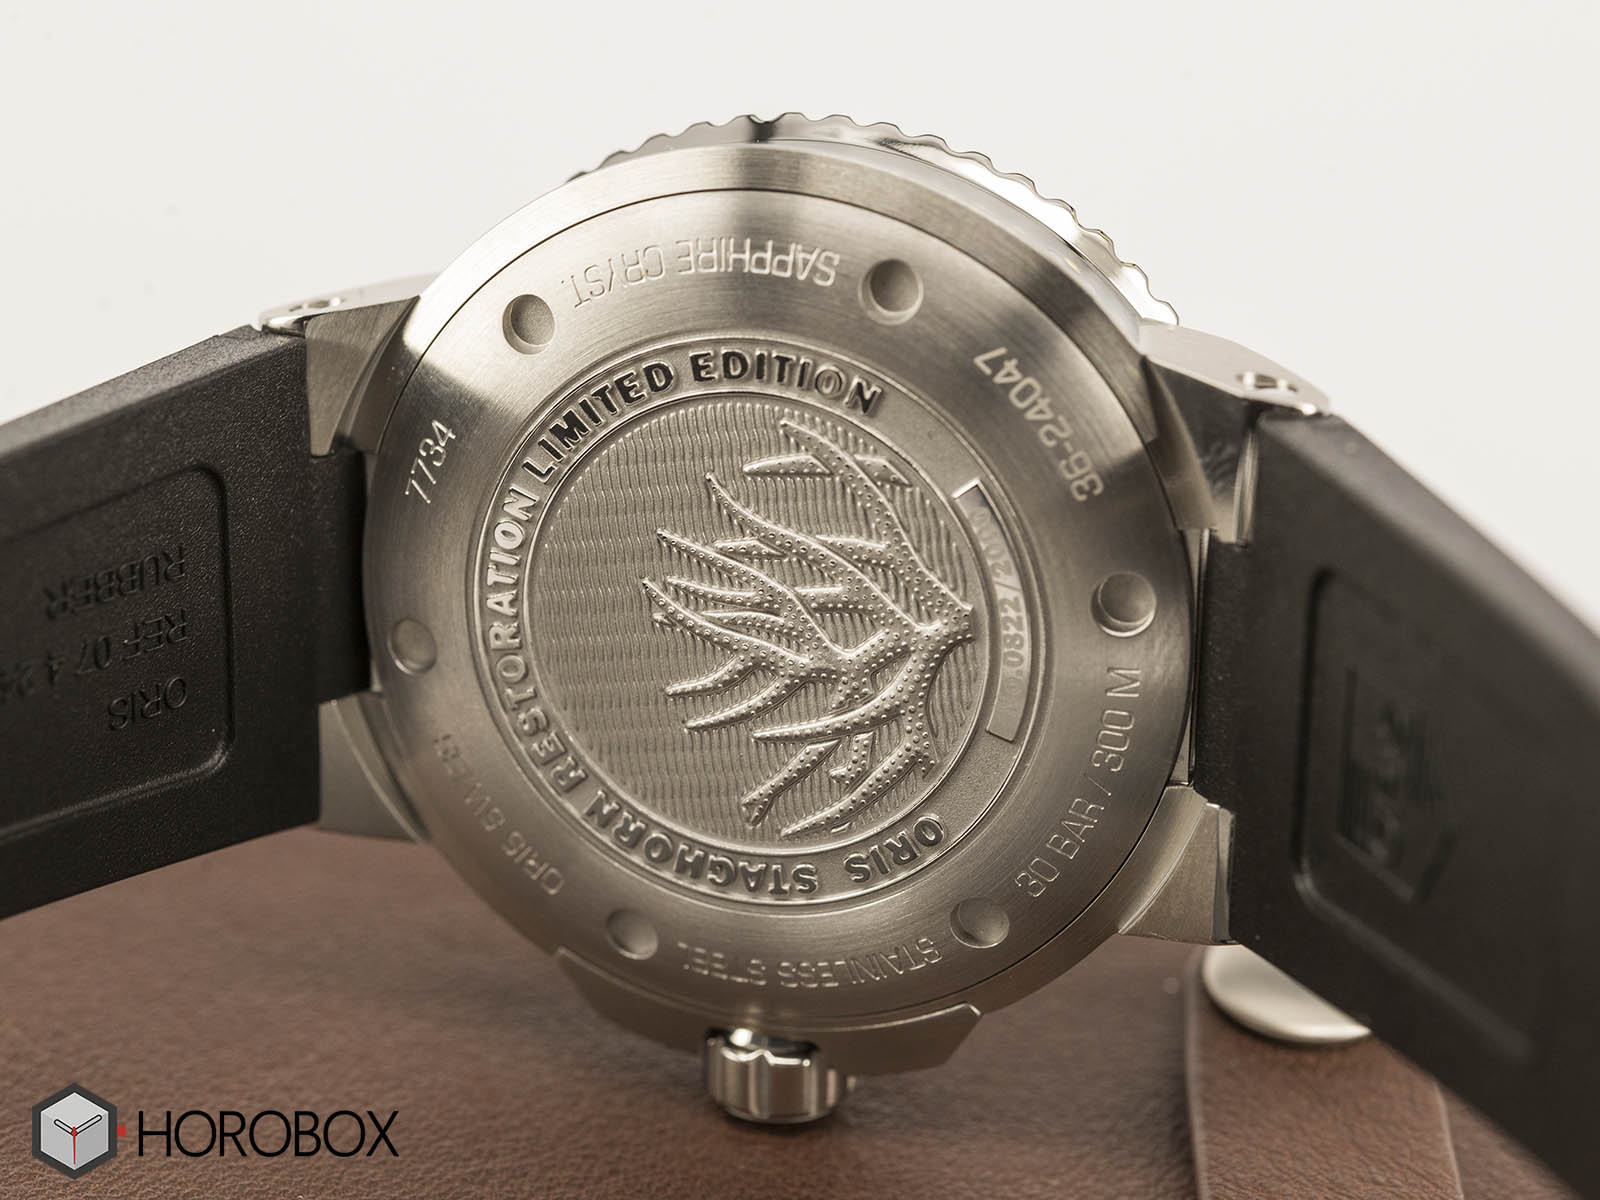 Oris-Staghorn-Restoration-Limited-Edtion-4.jpg